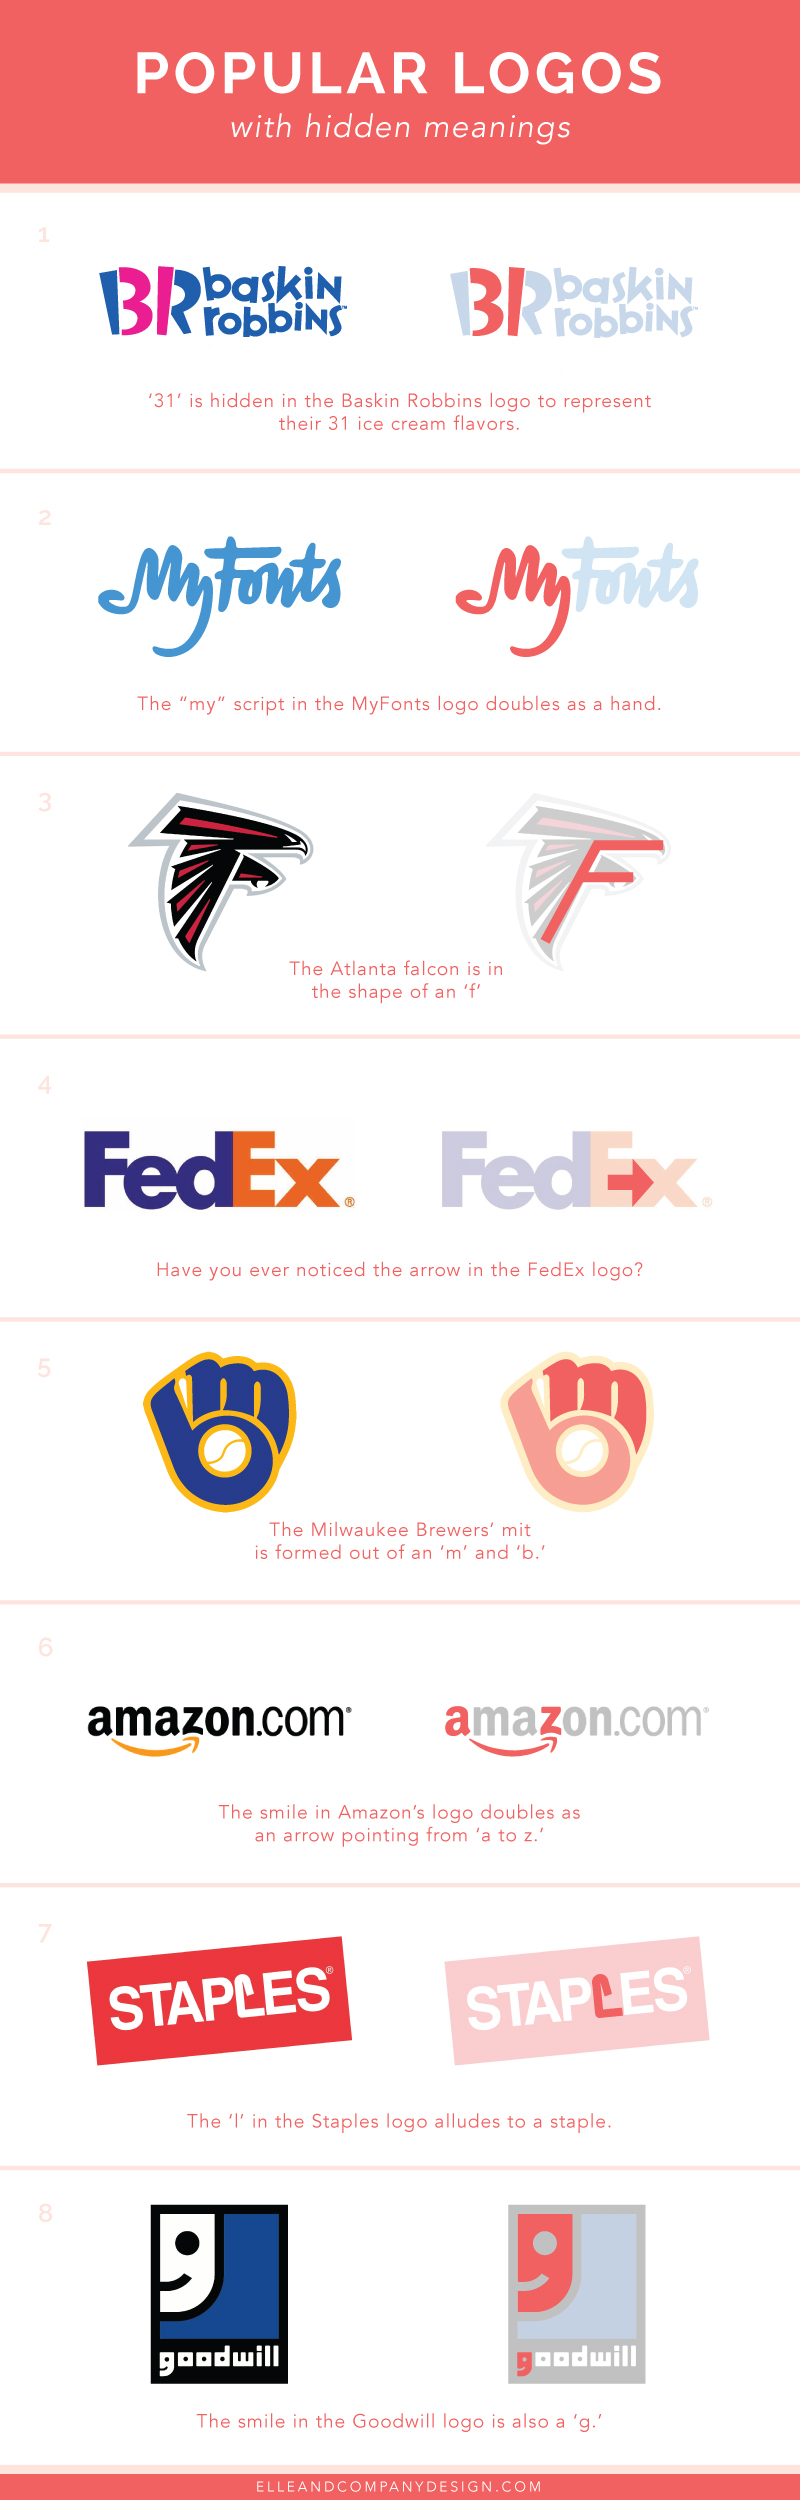 8 Popular Logos with Hidden Meanings | Elle & Company